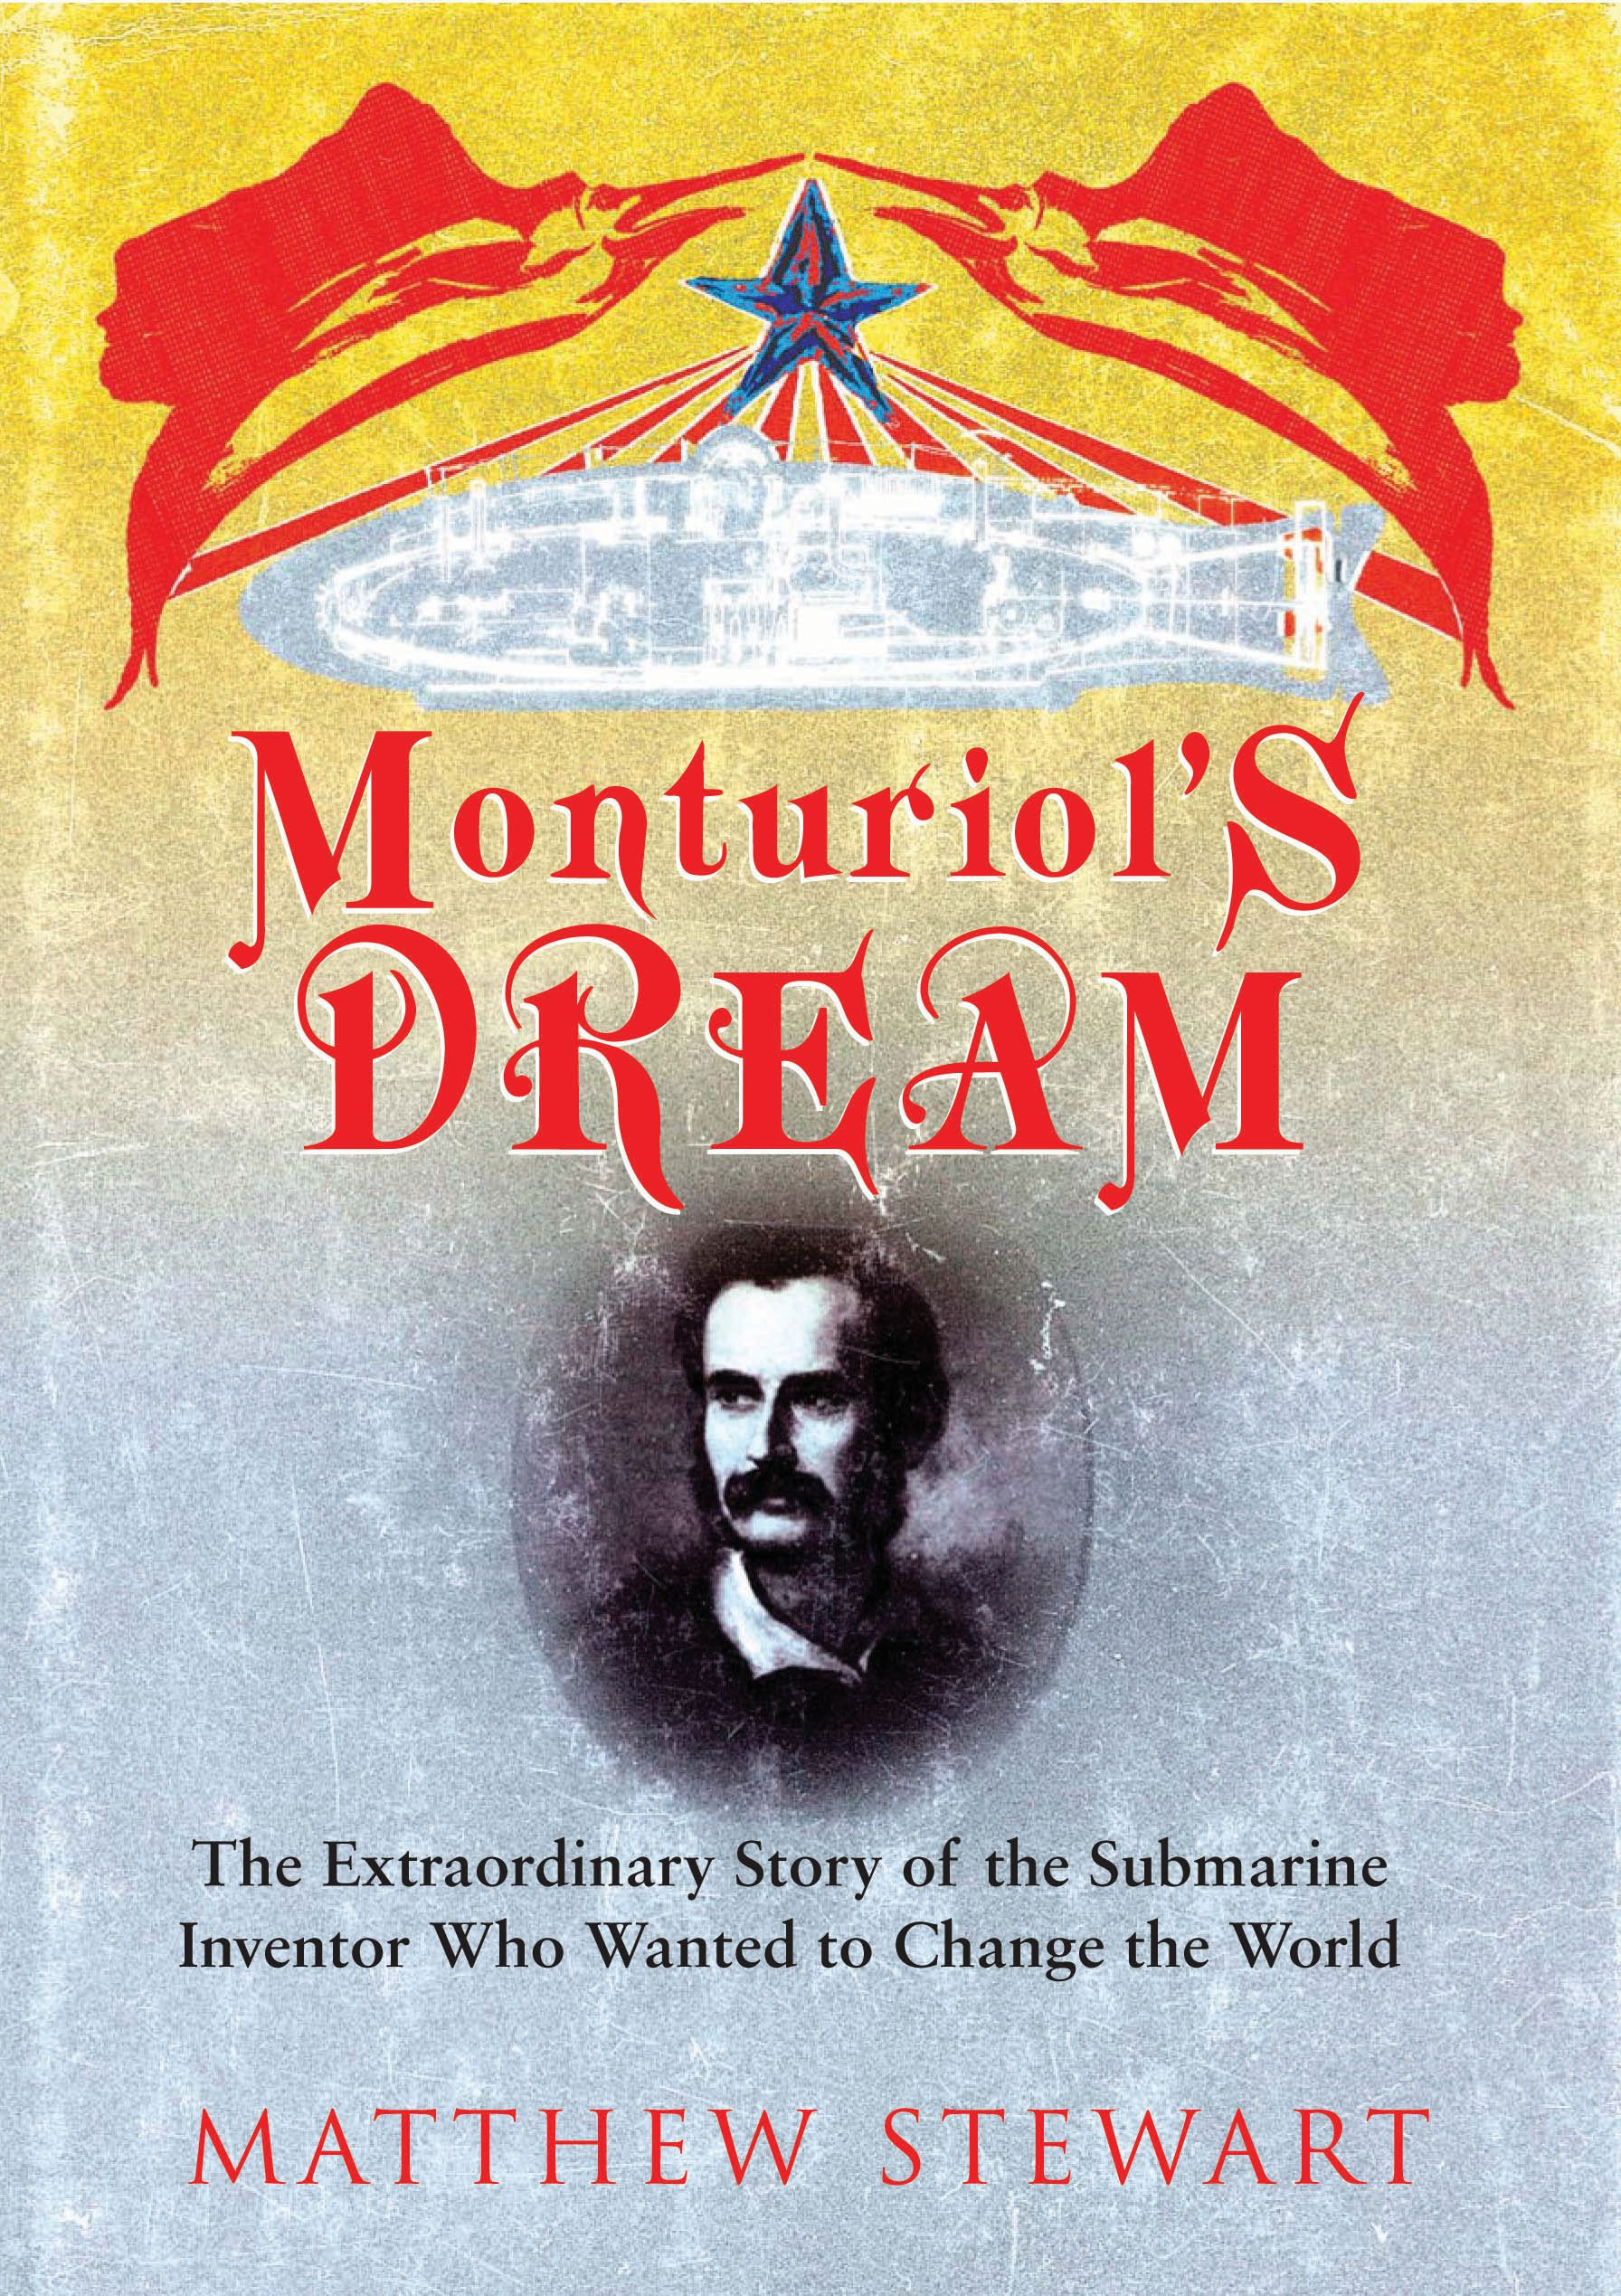 Monturiol's Dream : The Extraordinary Story of the Submarine Inventor Who Wanted to Save the World